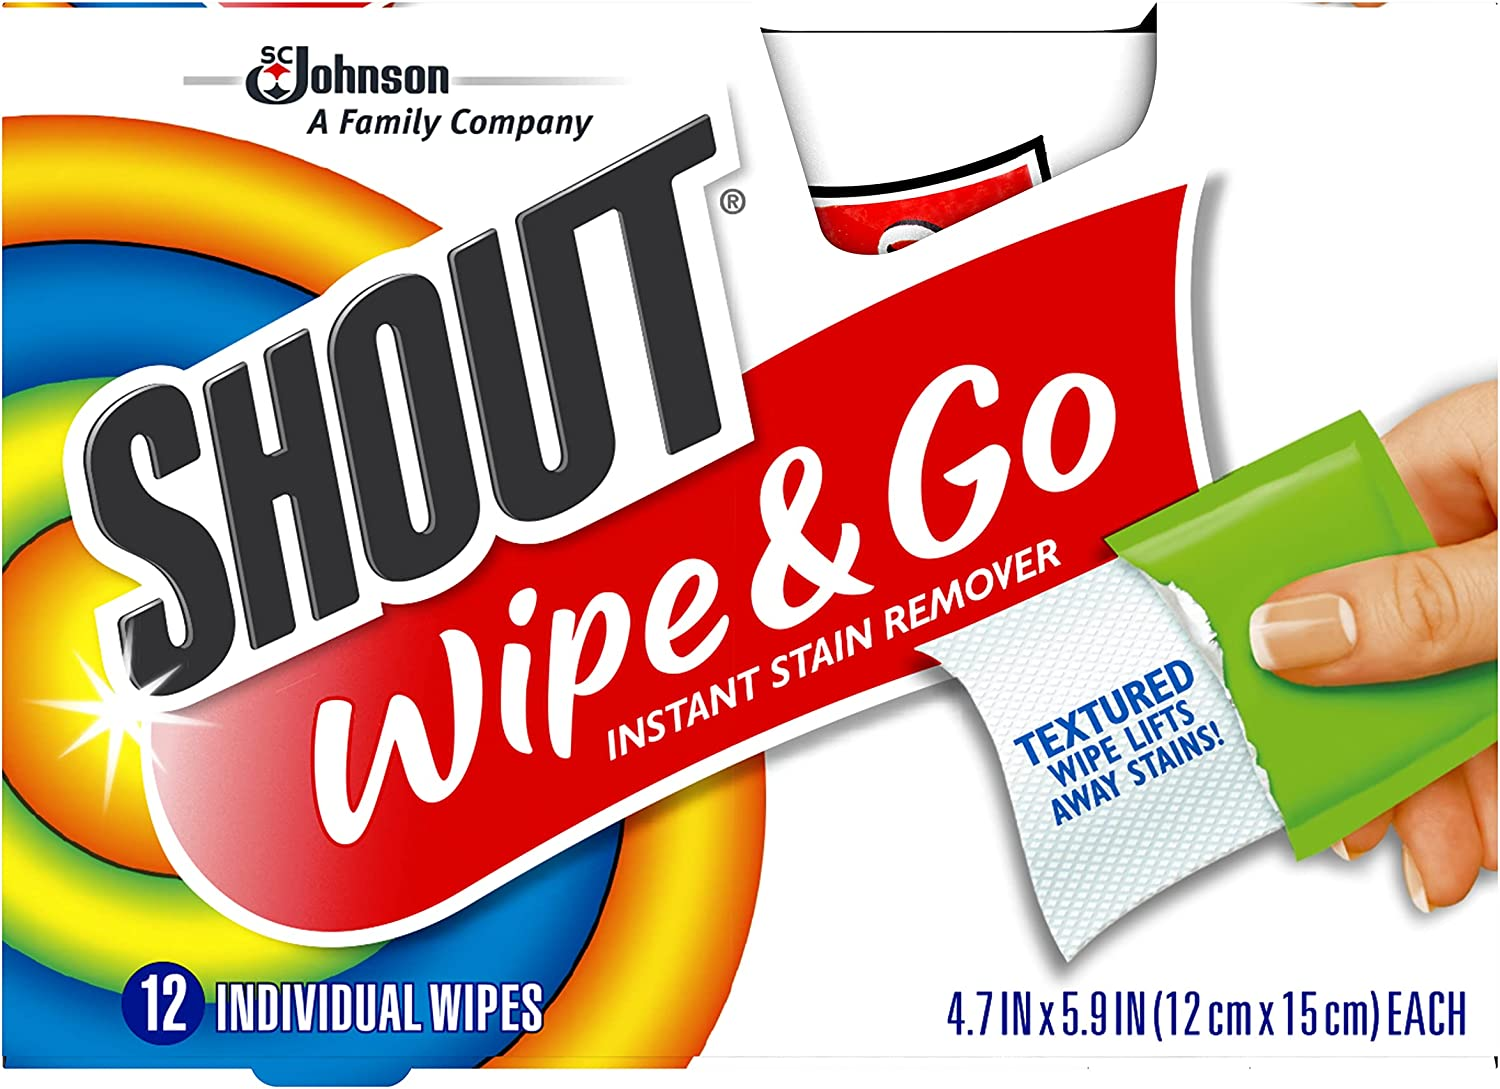 Shout Wipe and Go Instant Stain Laundry Al sold out. SEAL limited product for On-the-Go Remover S